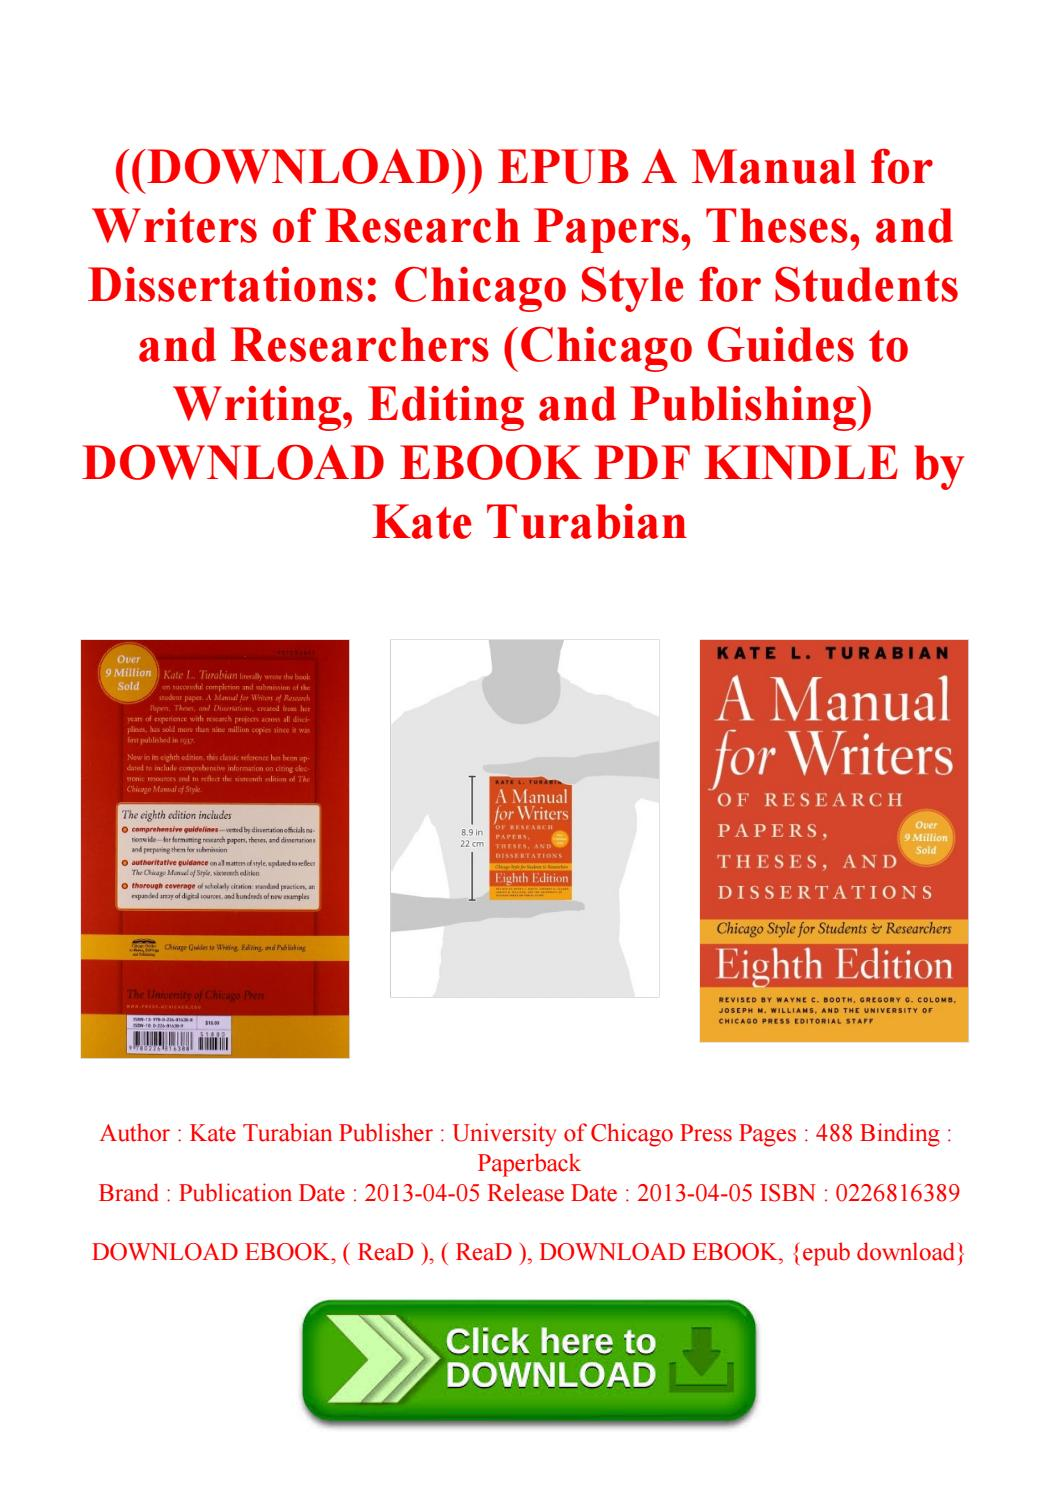 003 Page 1 Manual For Writers Of Researchs Theses And Dissertations Magnificent Research Papers A Amazon 9th Edition 8th 13 Full